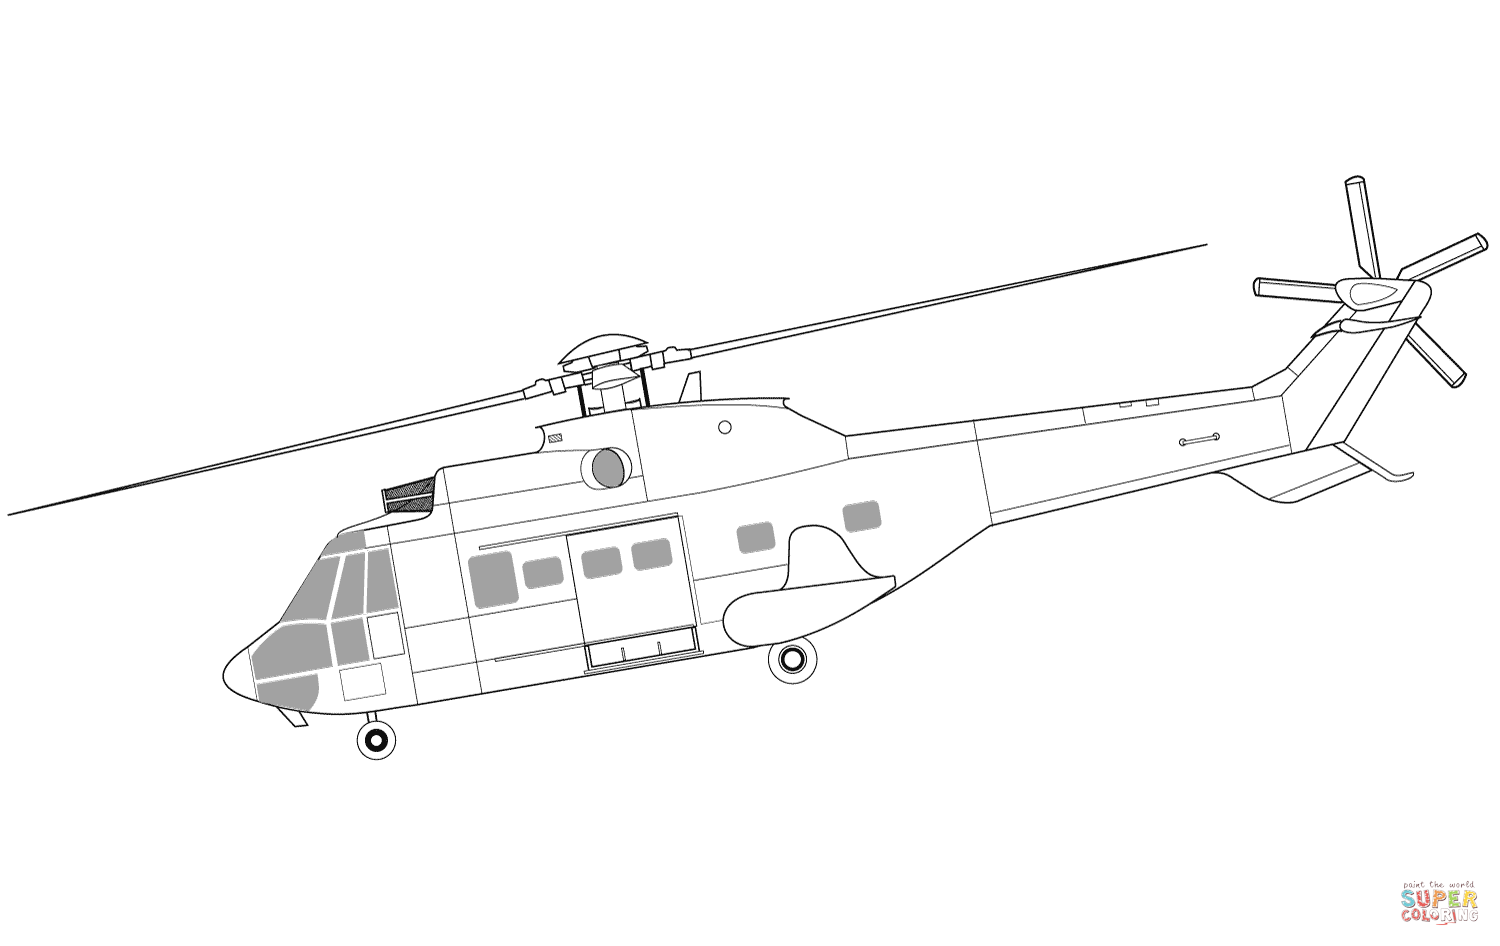 Ausmalbild Eurocopter As332 Super Puma Hubschrauber